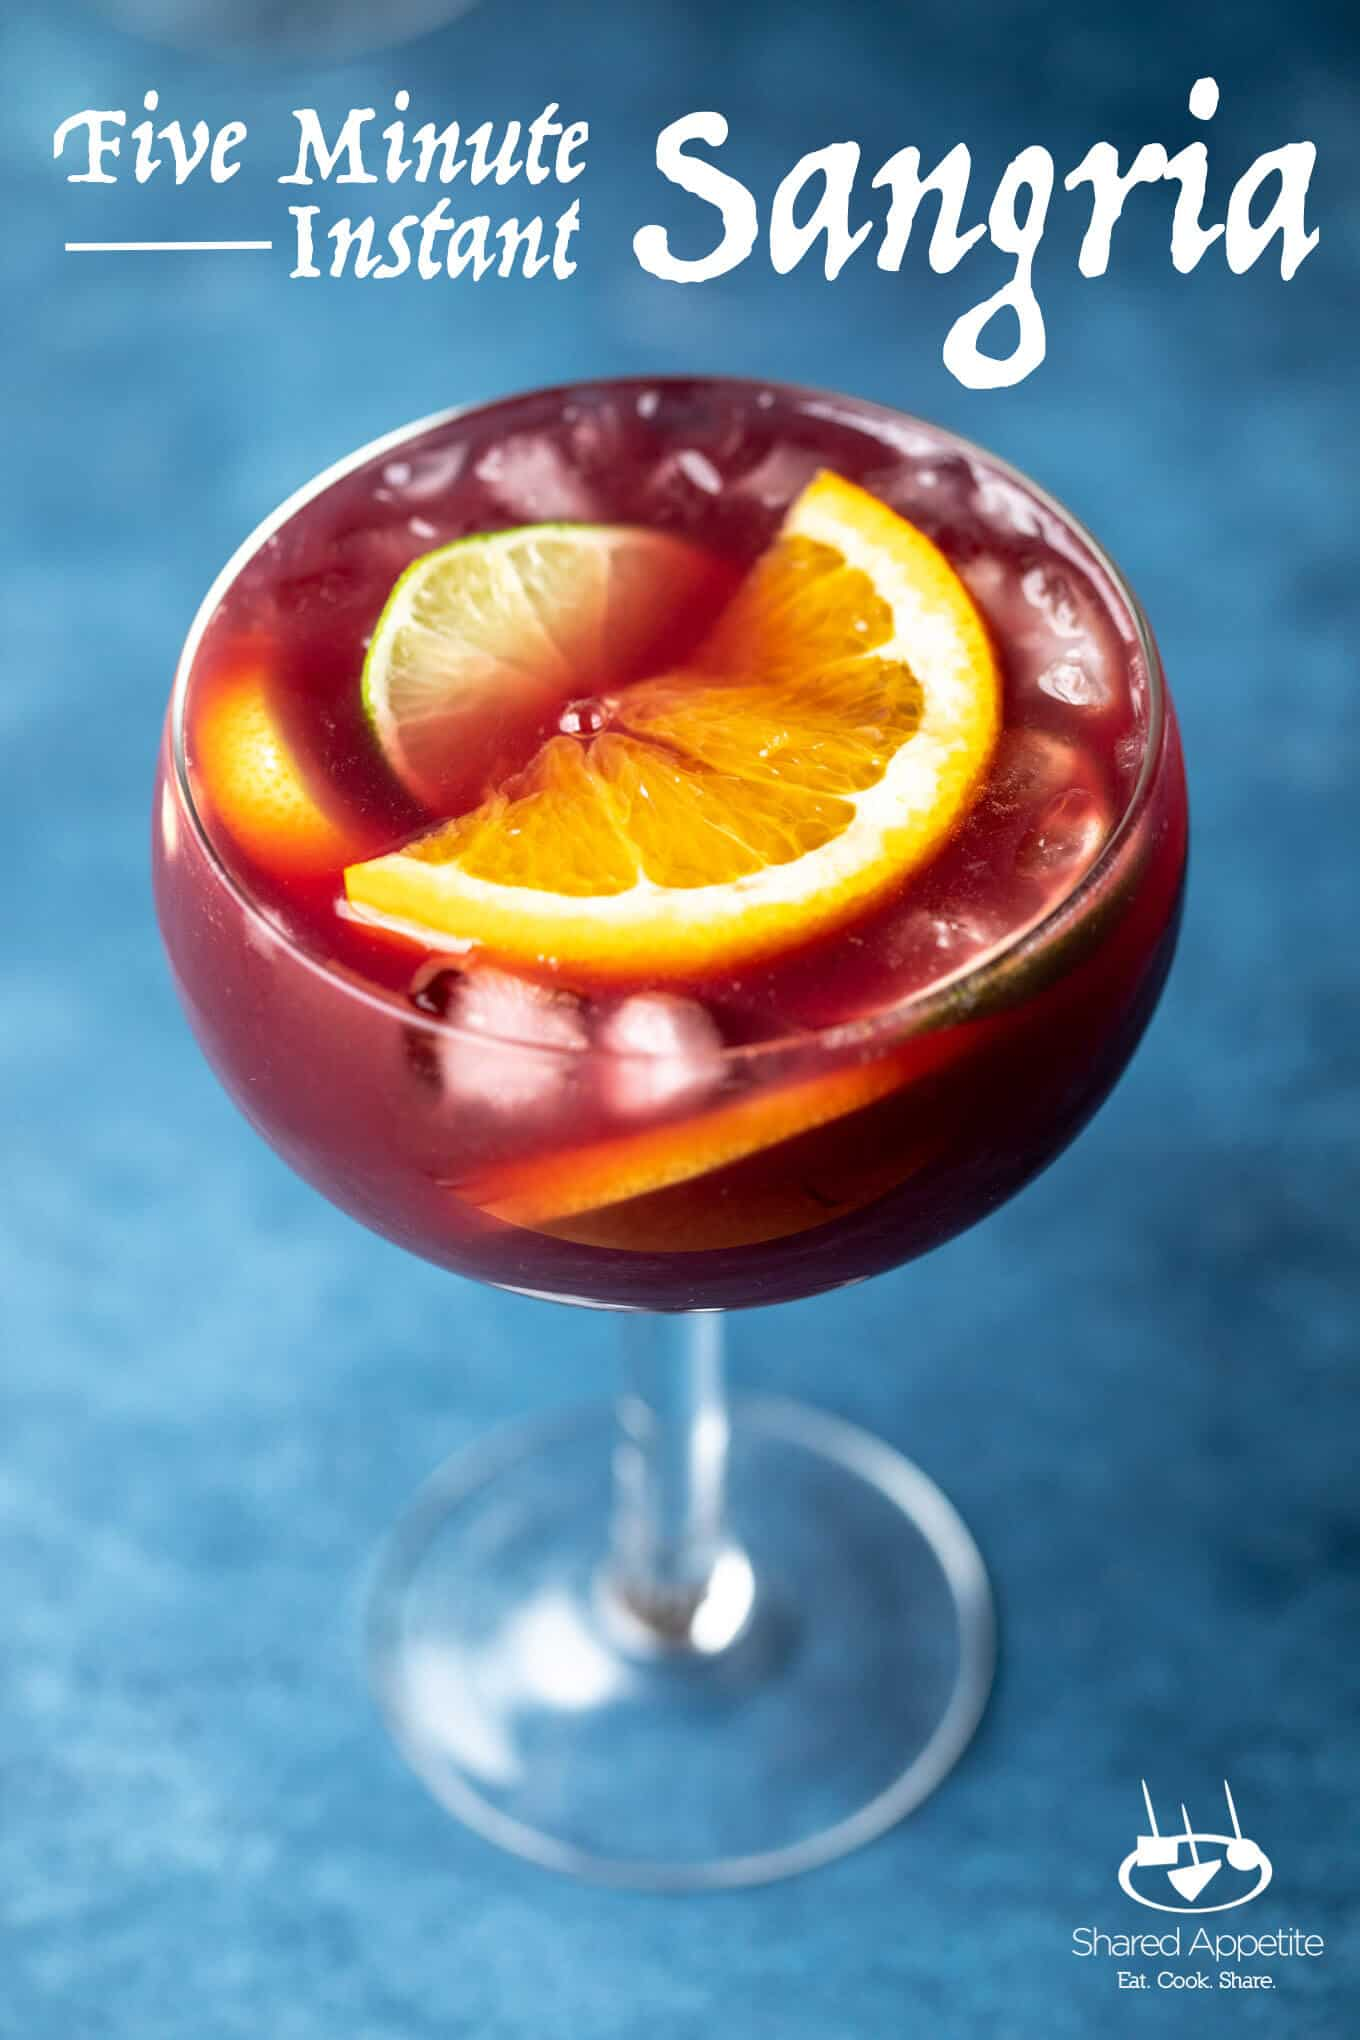 Five Minute Instant Sangria